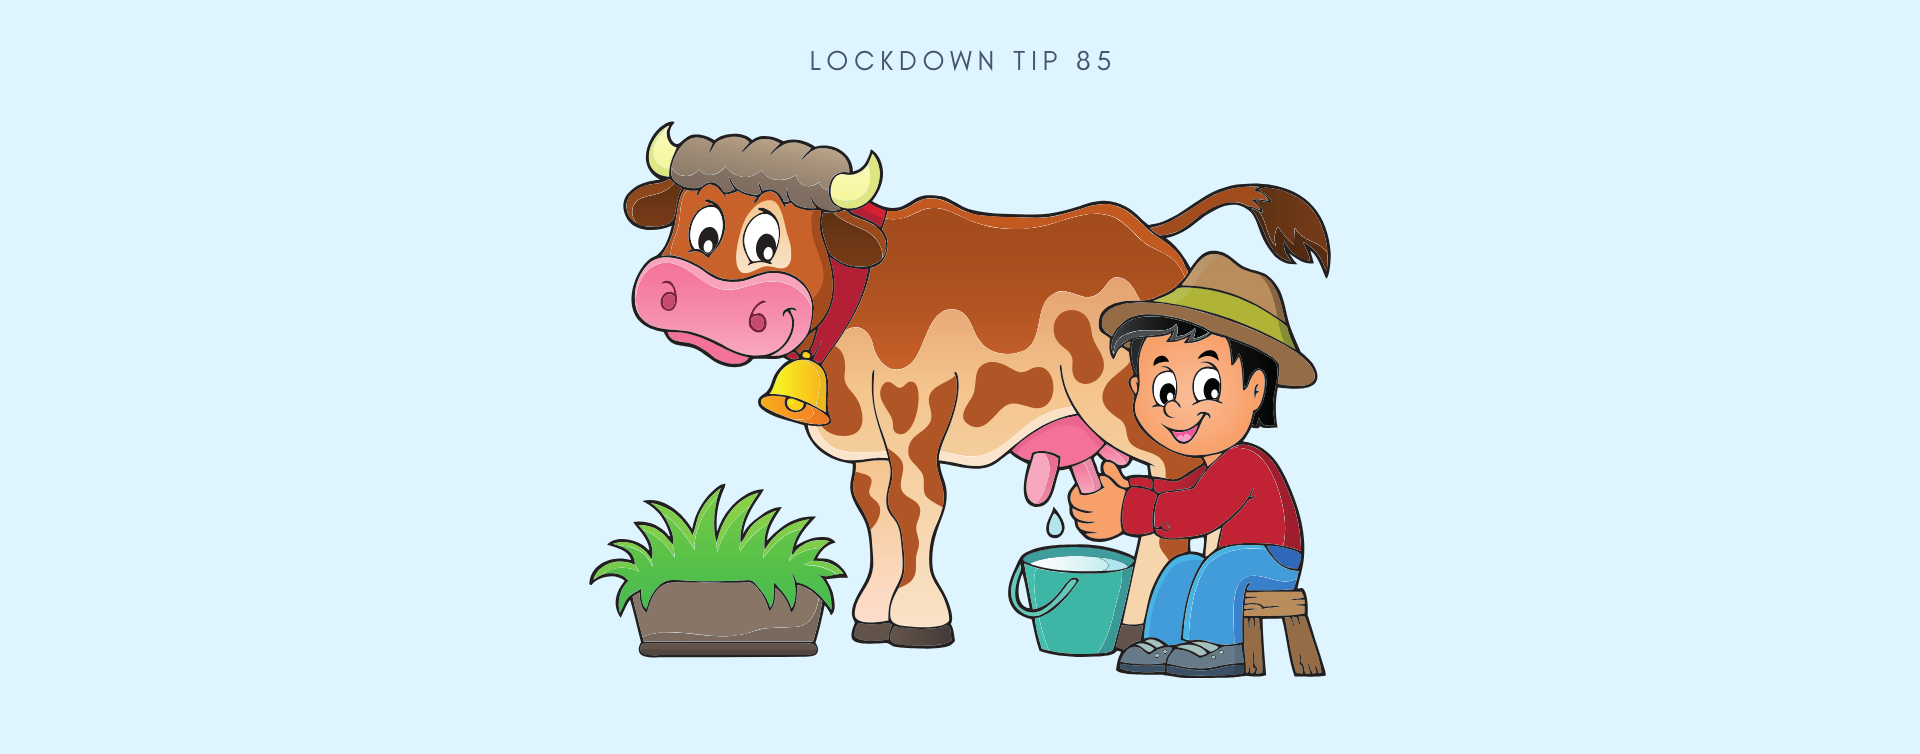 MCSA Lockdown Tip 85